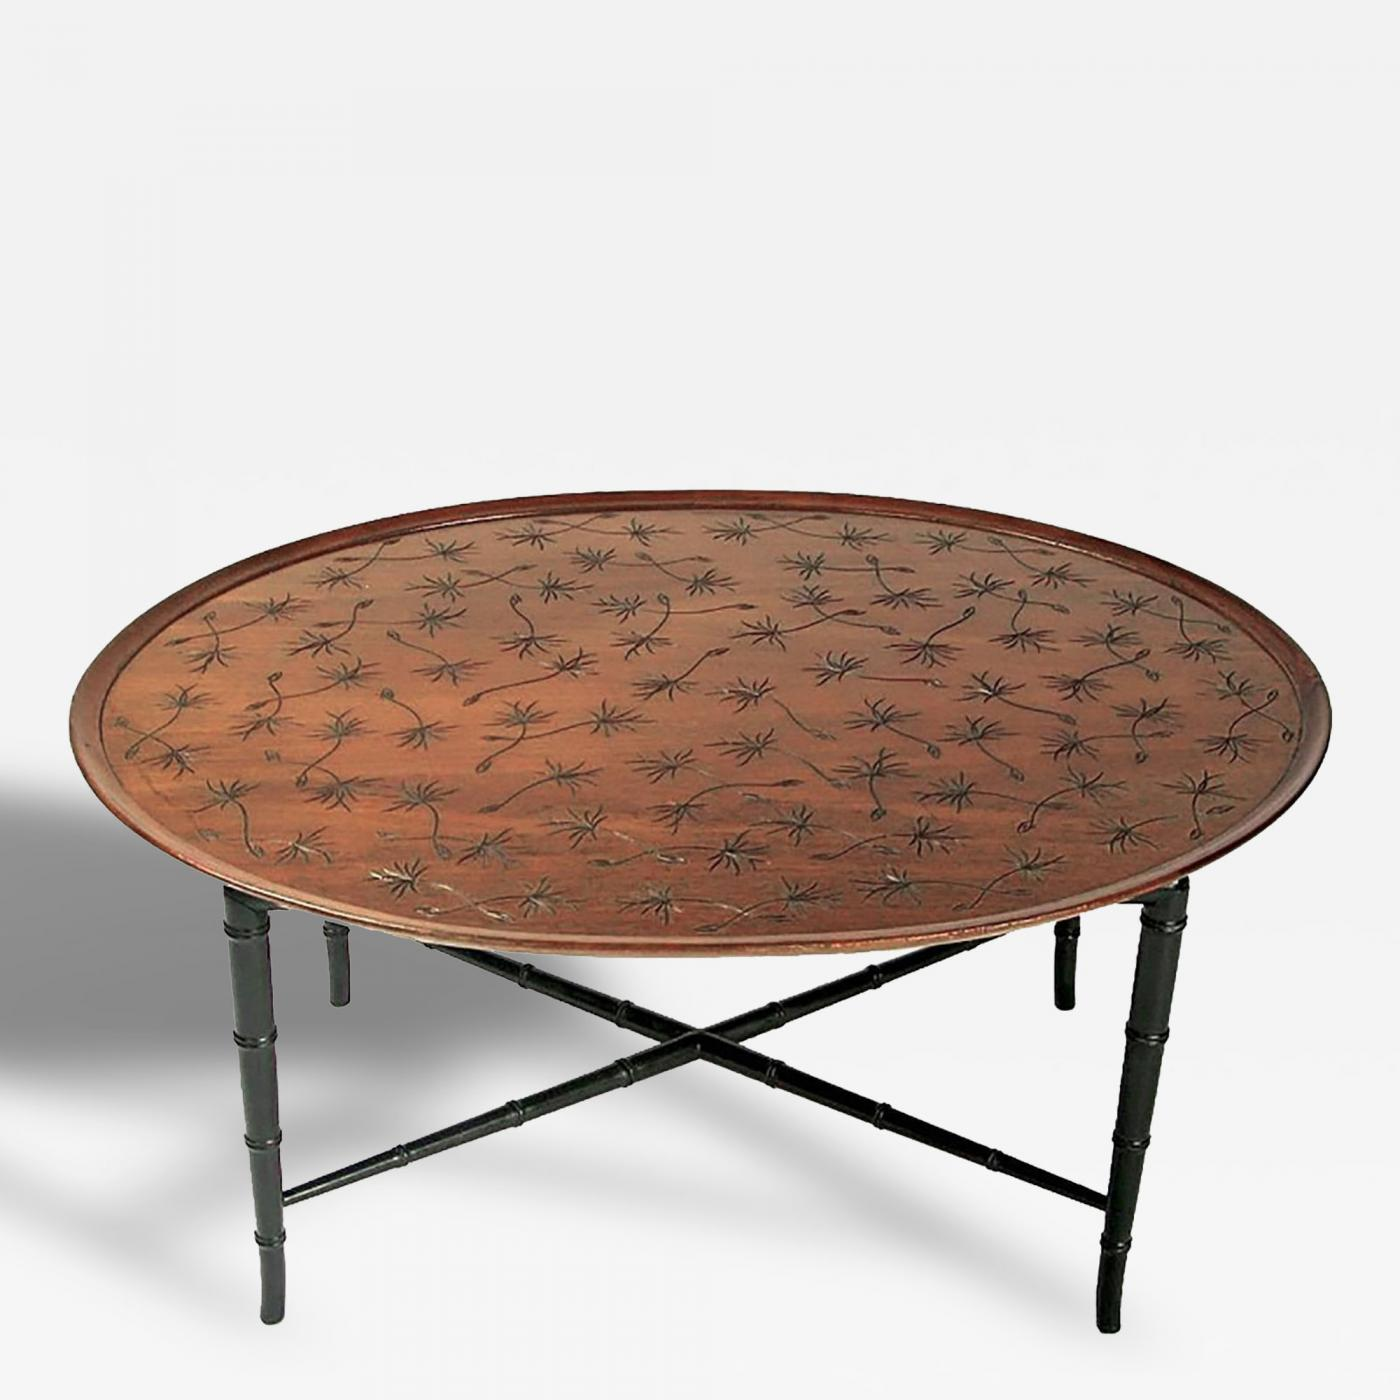 Kittinger Furniture Co Kittinger Tray Coffee Table With Incised